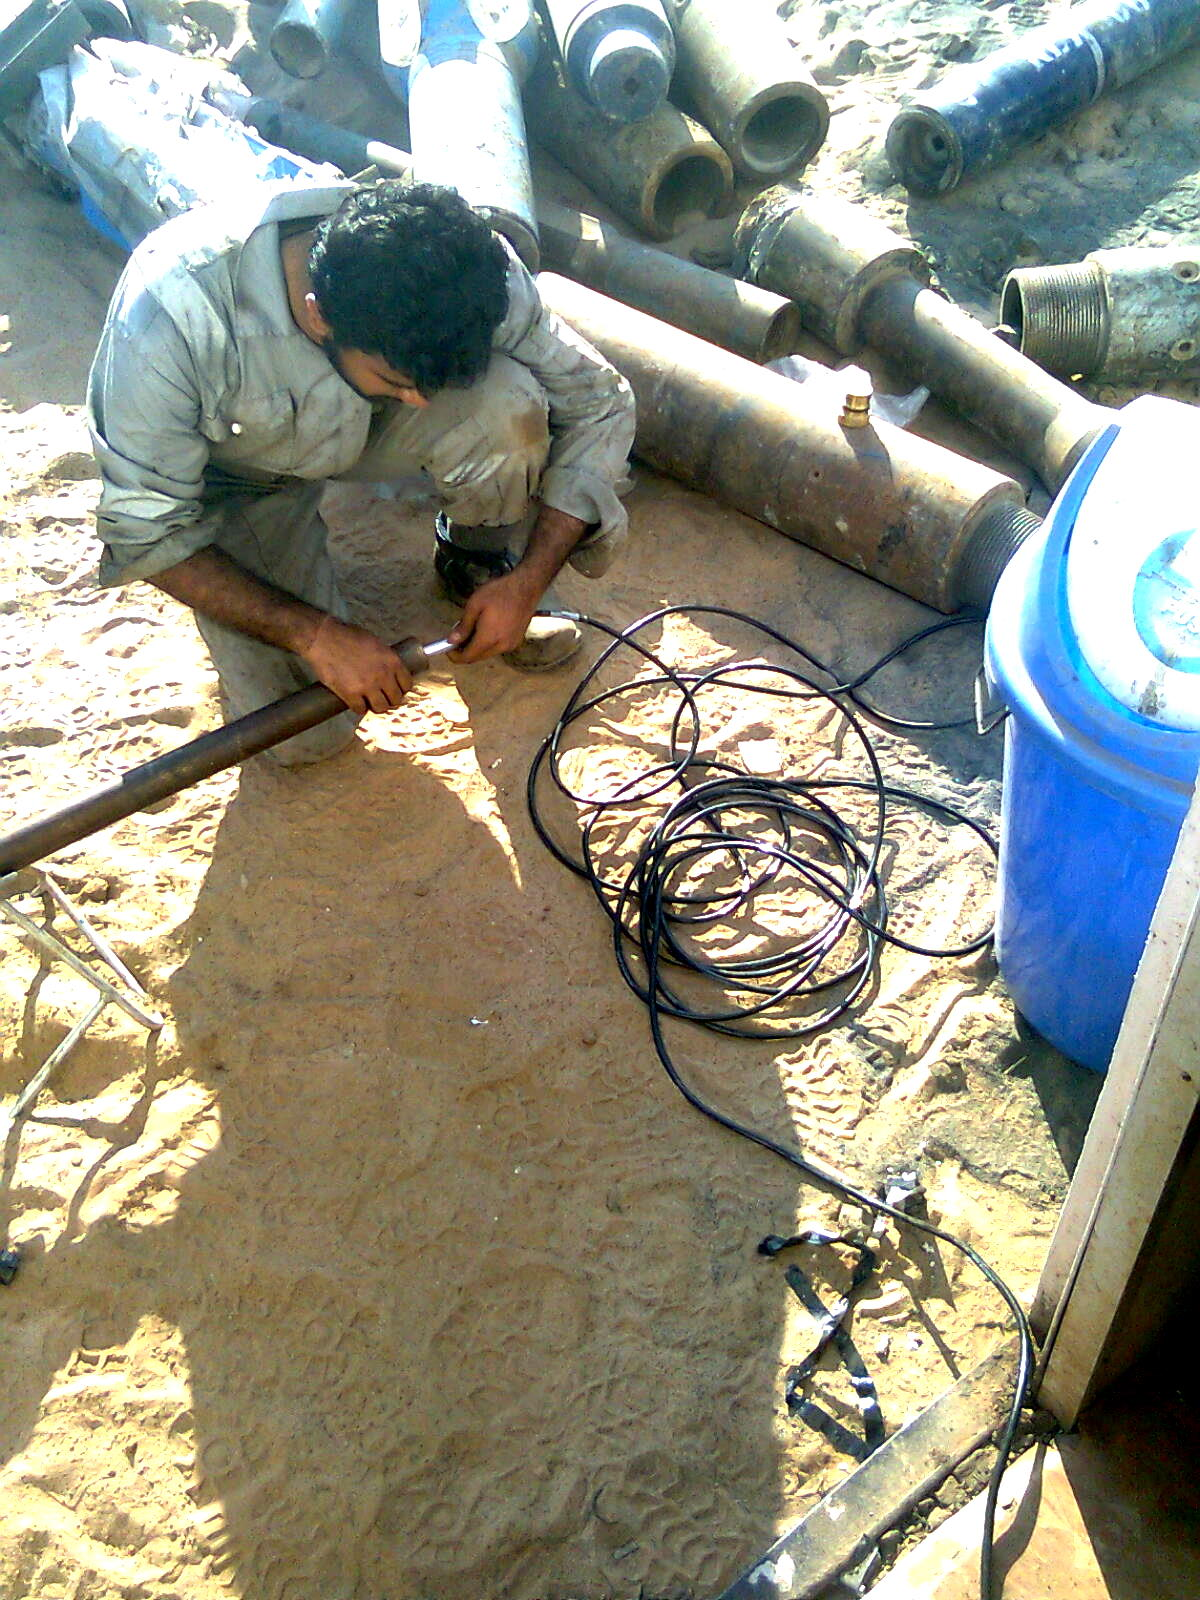 DIRECTIONAL DRILLING TECHNOLOGY: CAREER IN DIRECTIONAL DRILLING